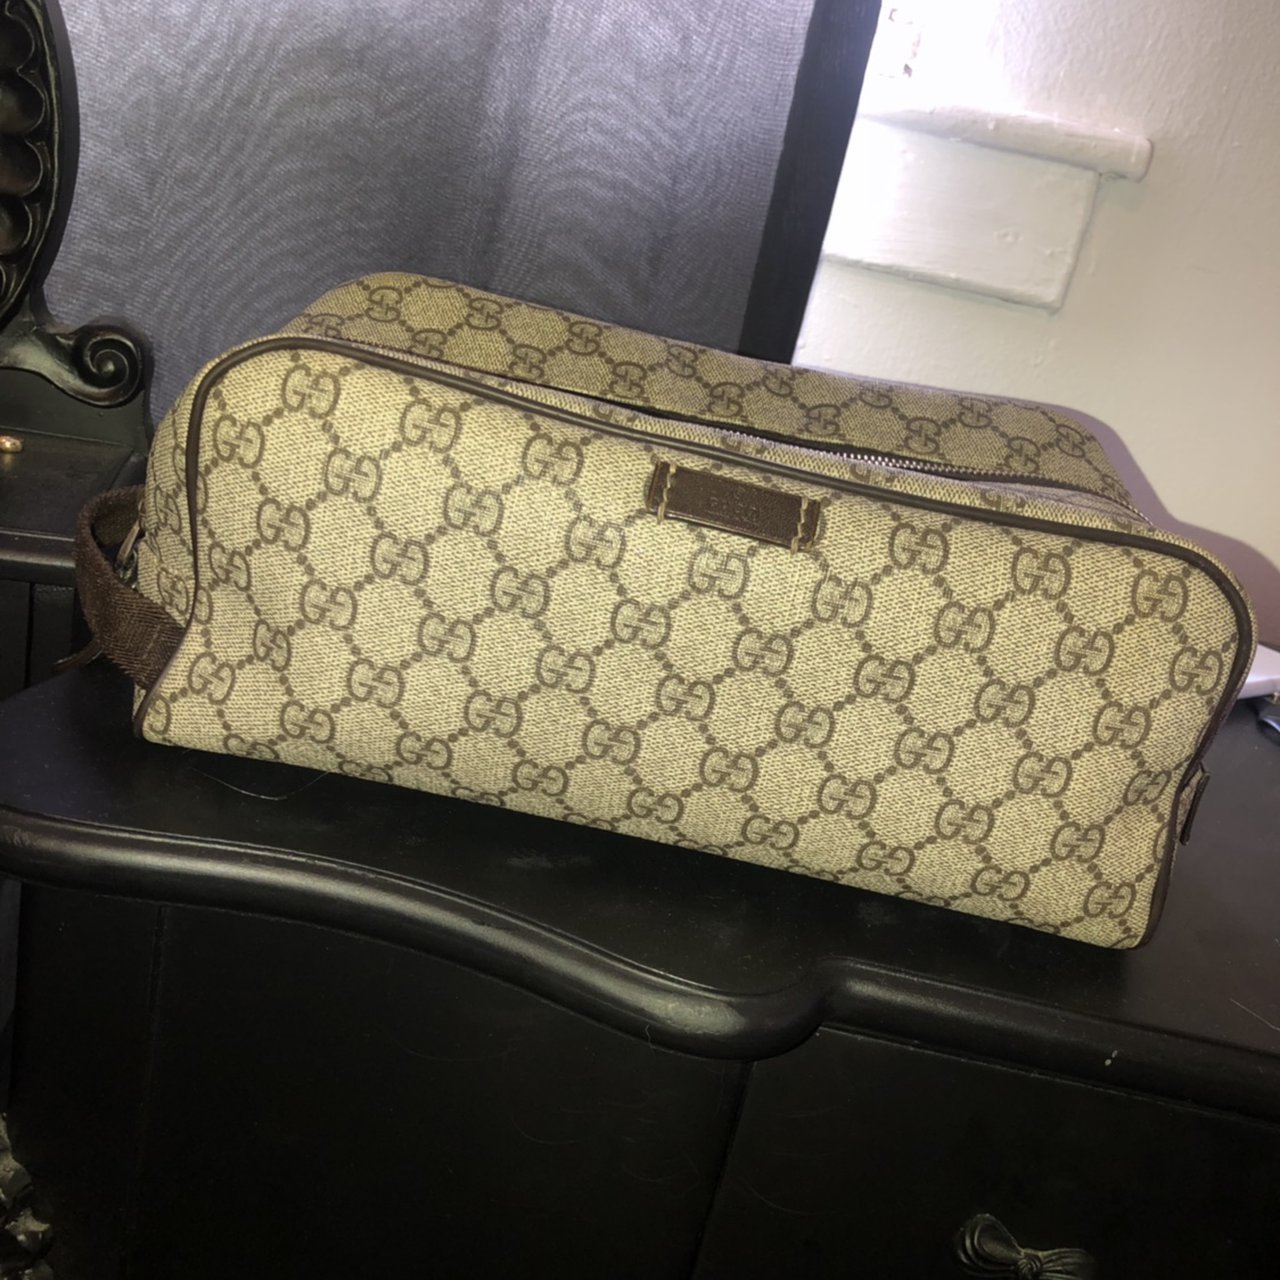 Gucci Toilet Make Up Bag Few Years Old But Well Depop